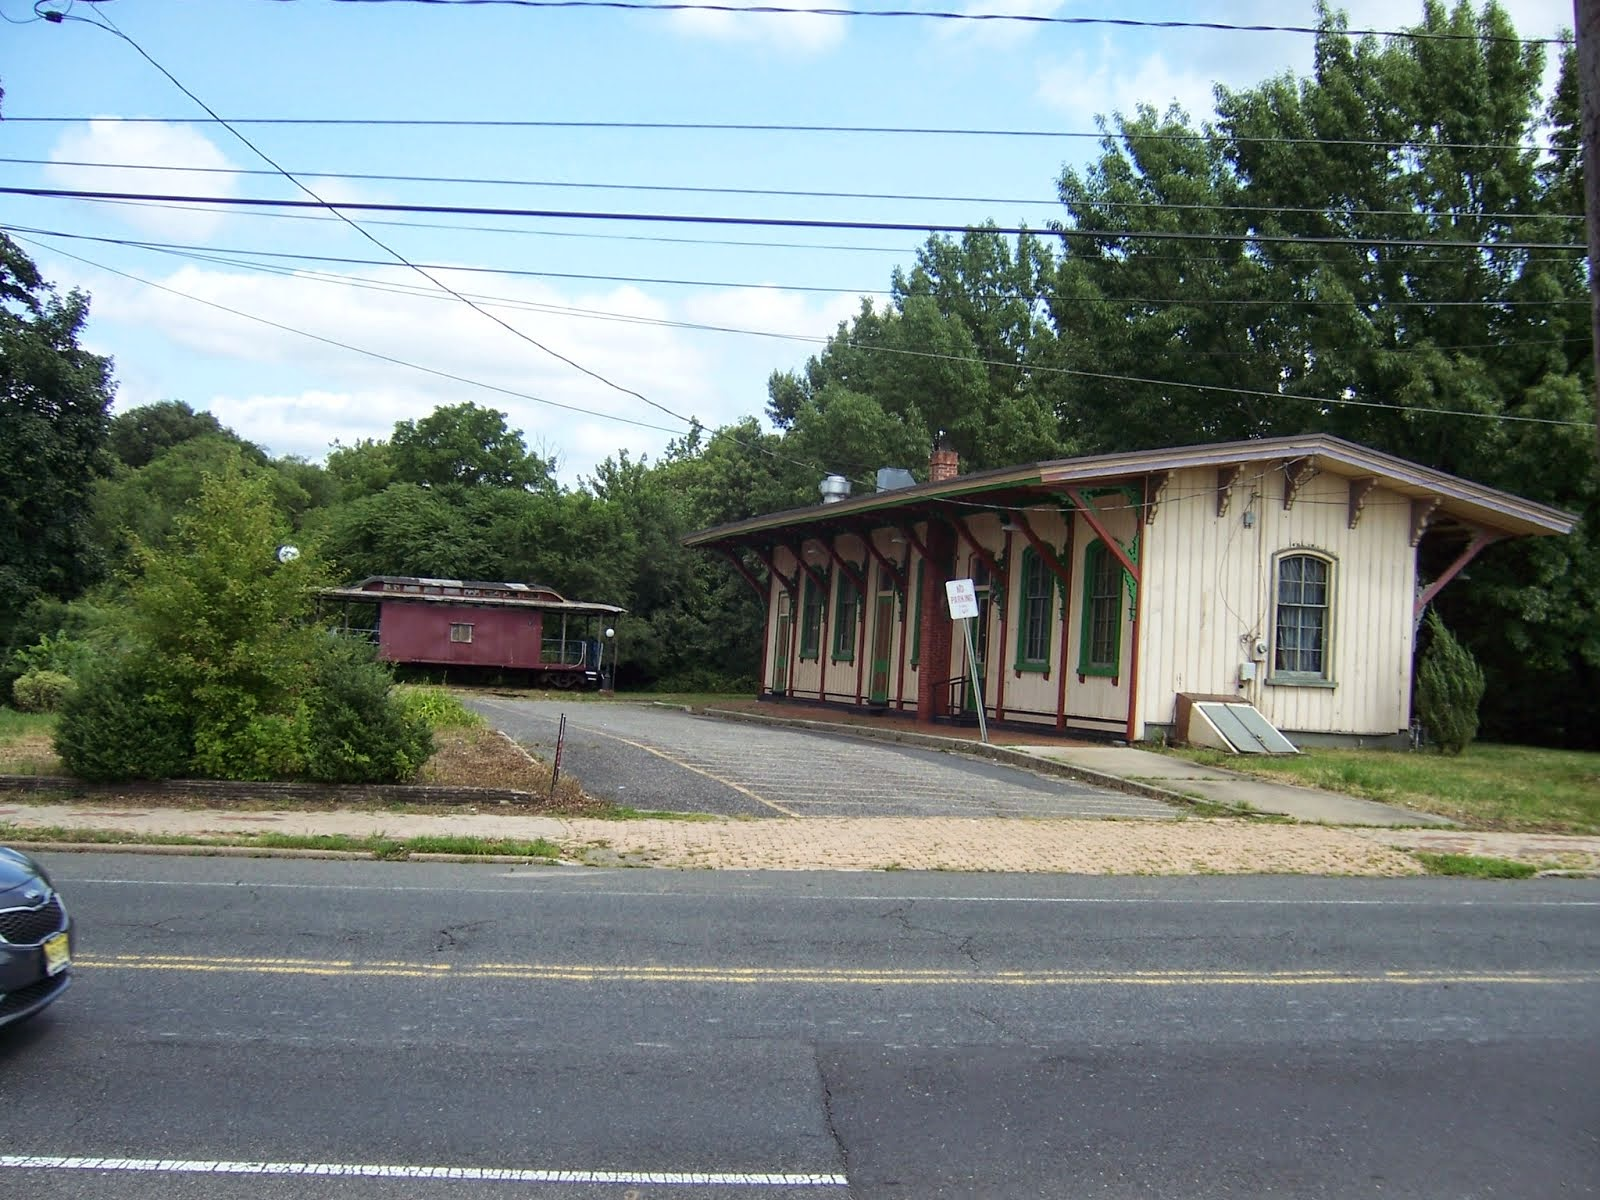 Mount Holly Train Station